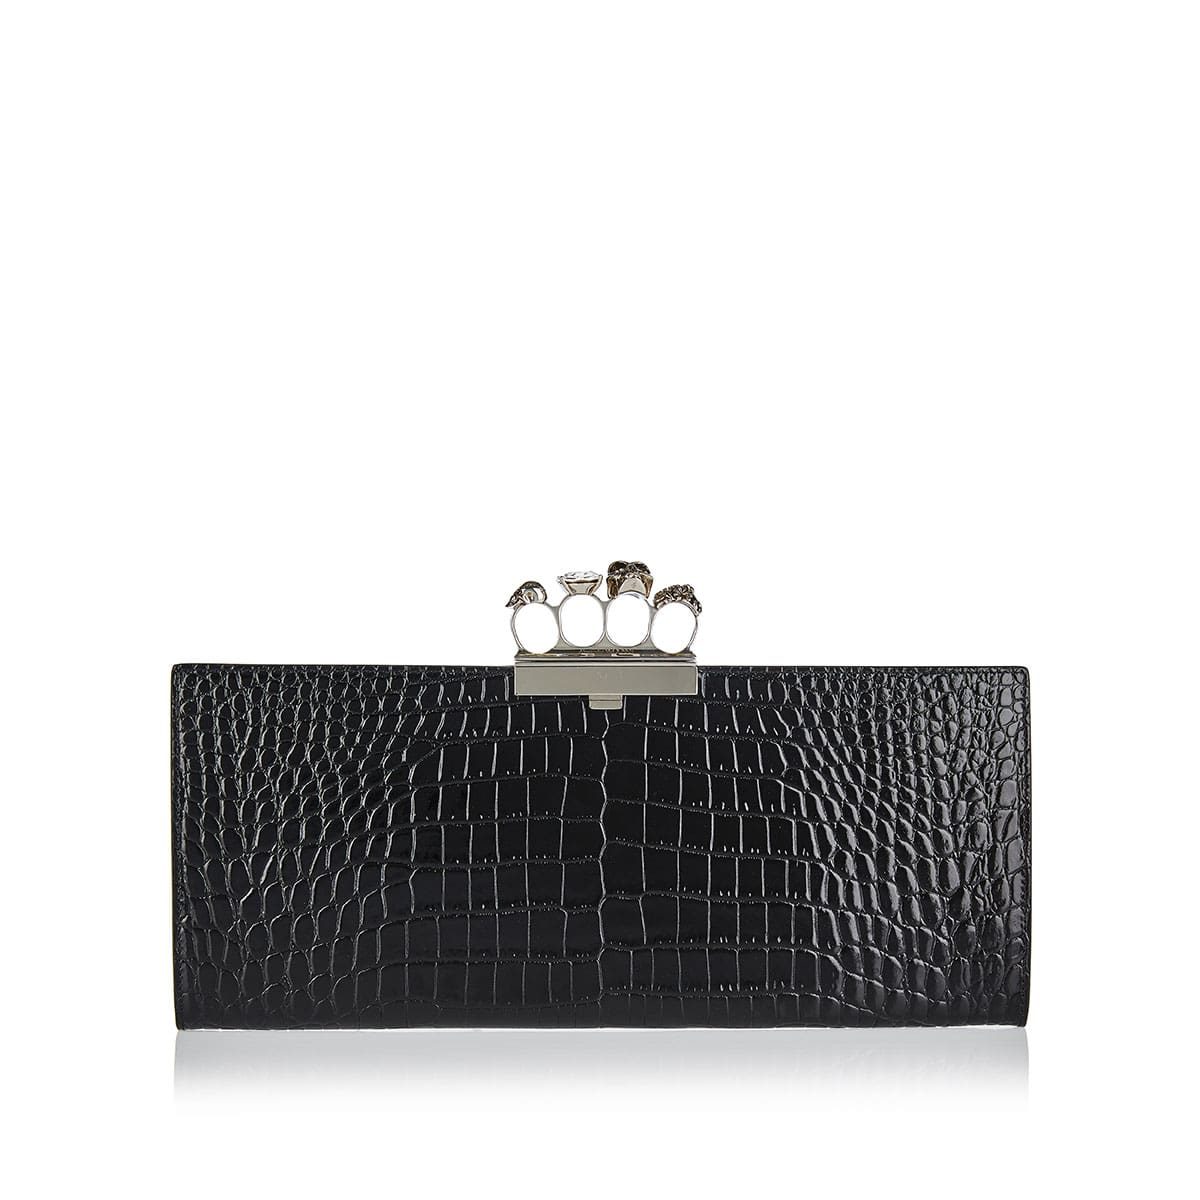 Four ring croc-effect clutch